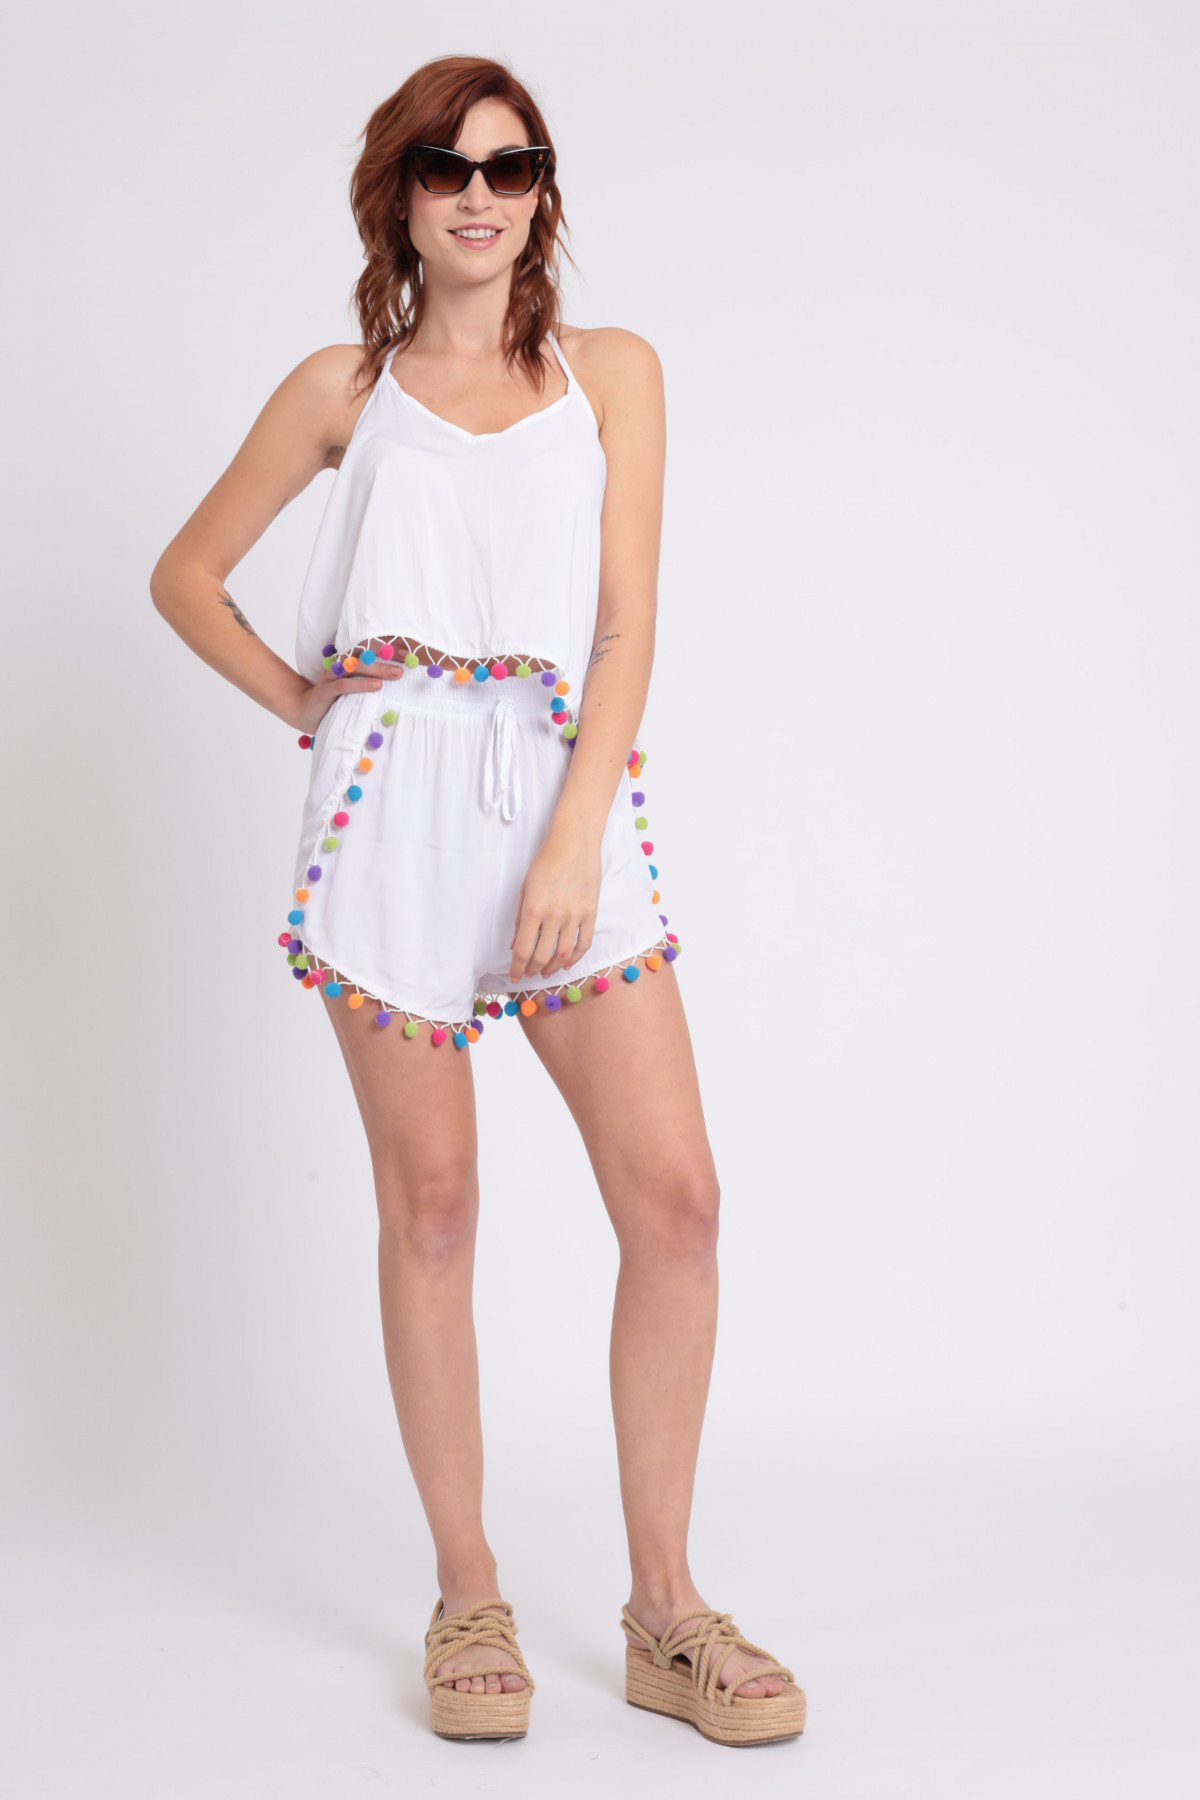 Complete Top and Shorts with Pompon Application